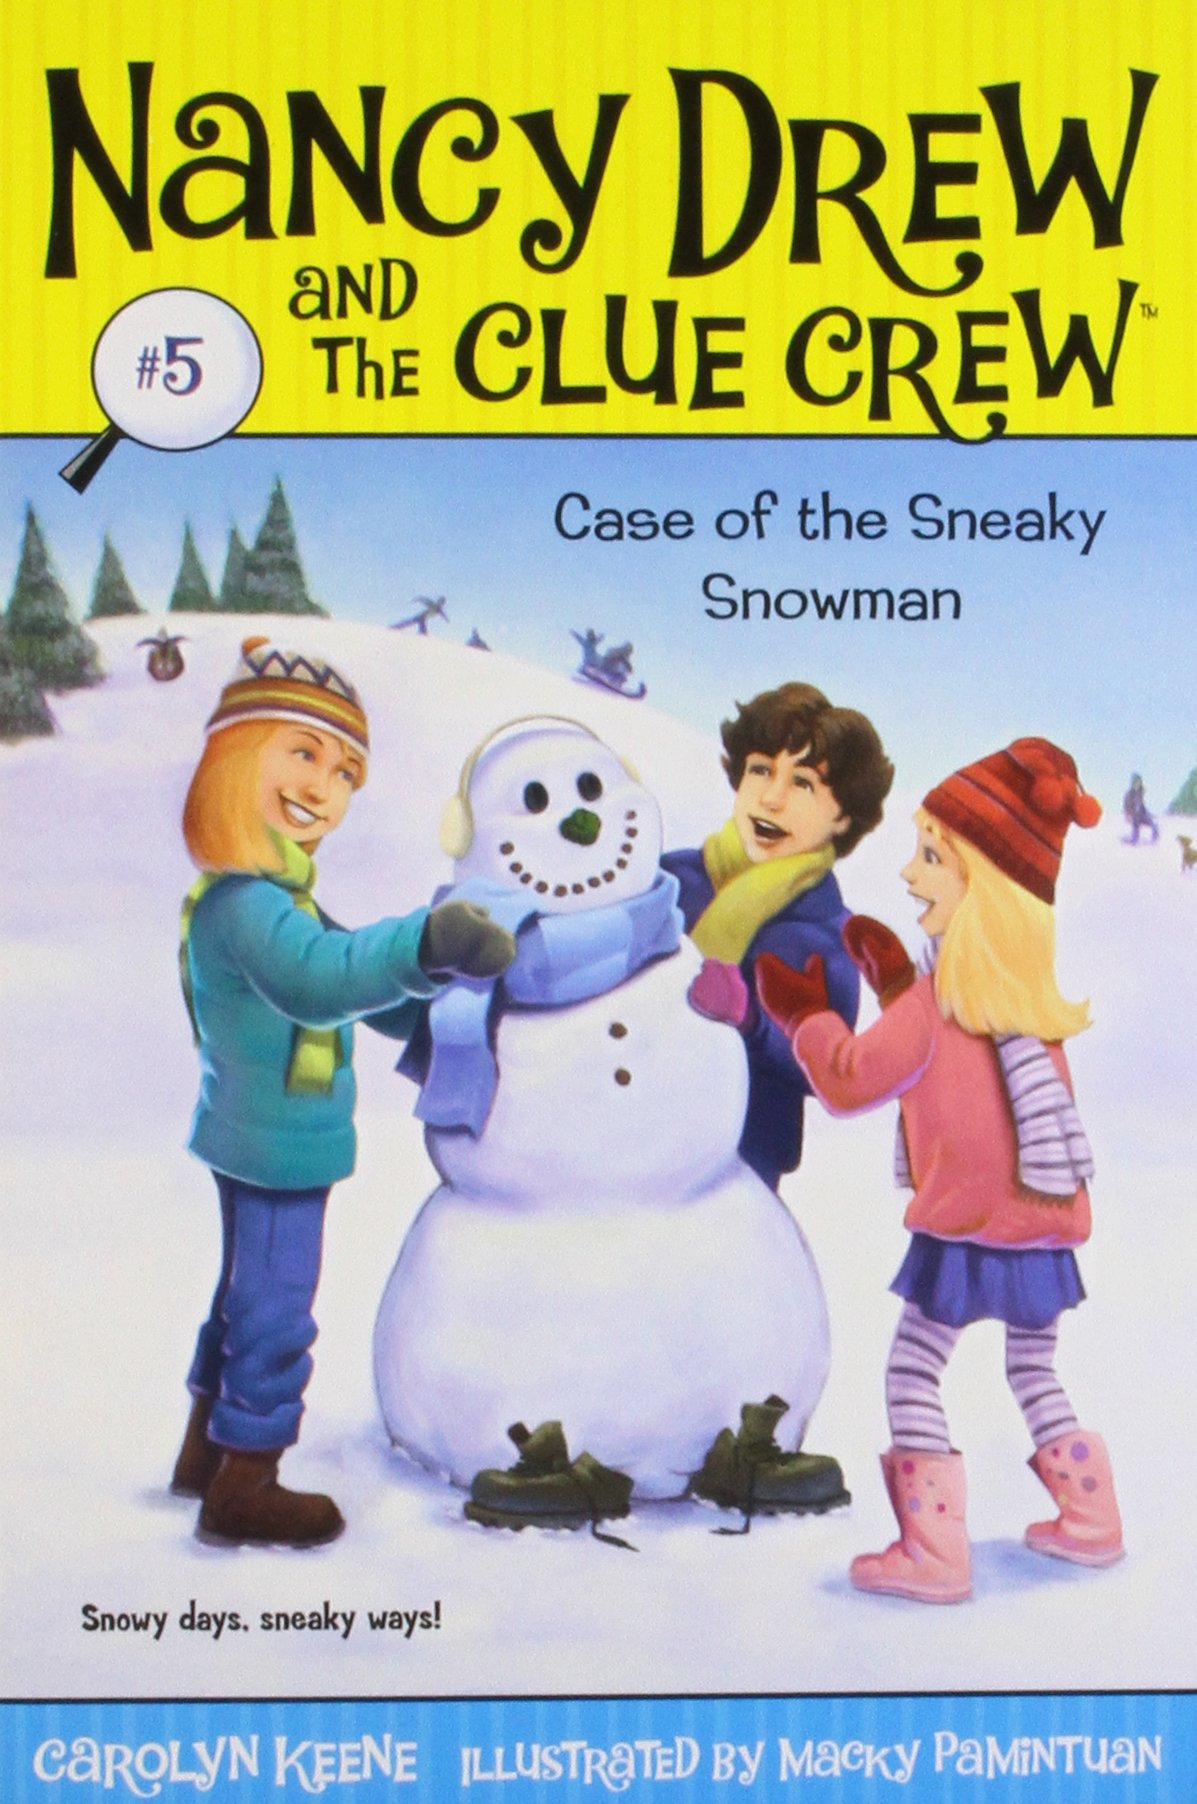 Case of the Sneaky Snowman (Nancy Drew and the Clue Crew #5) PDF